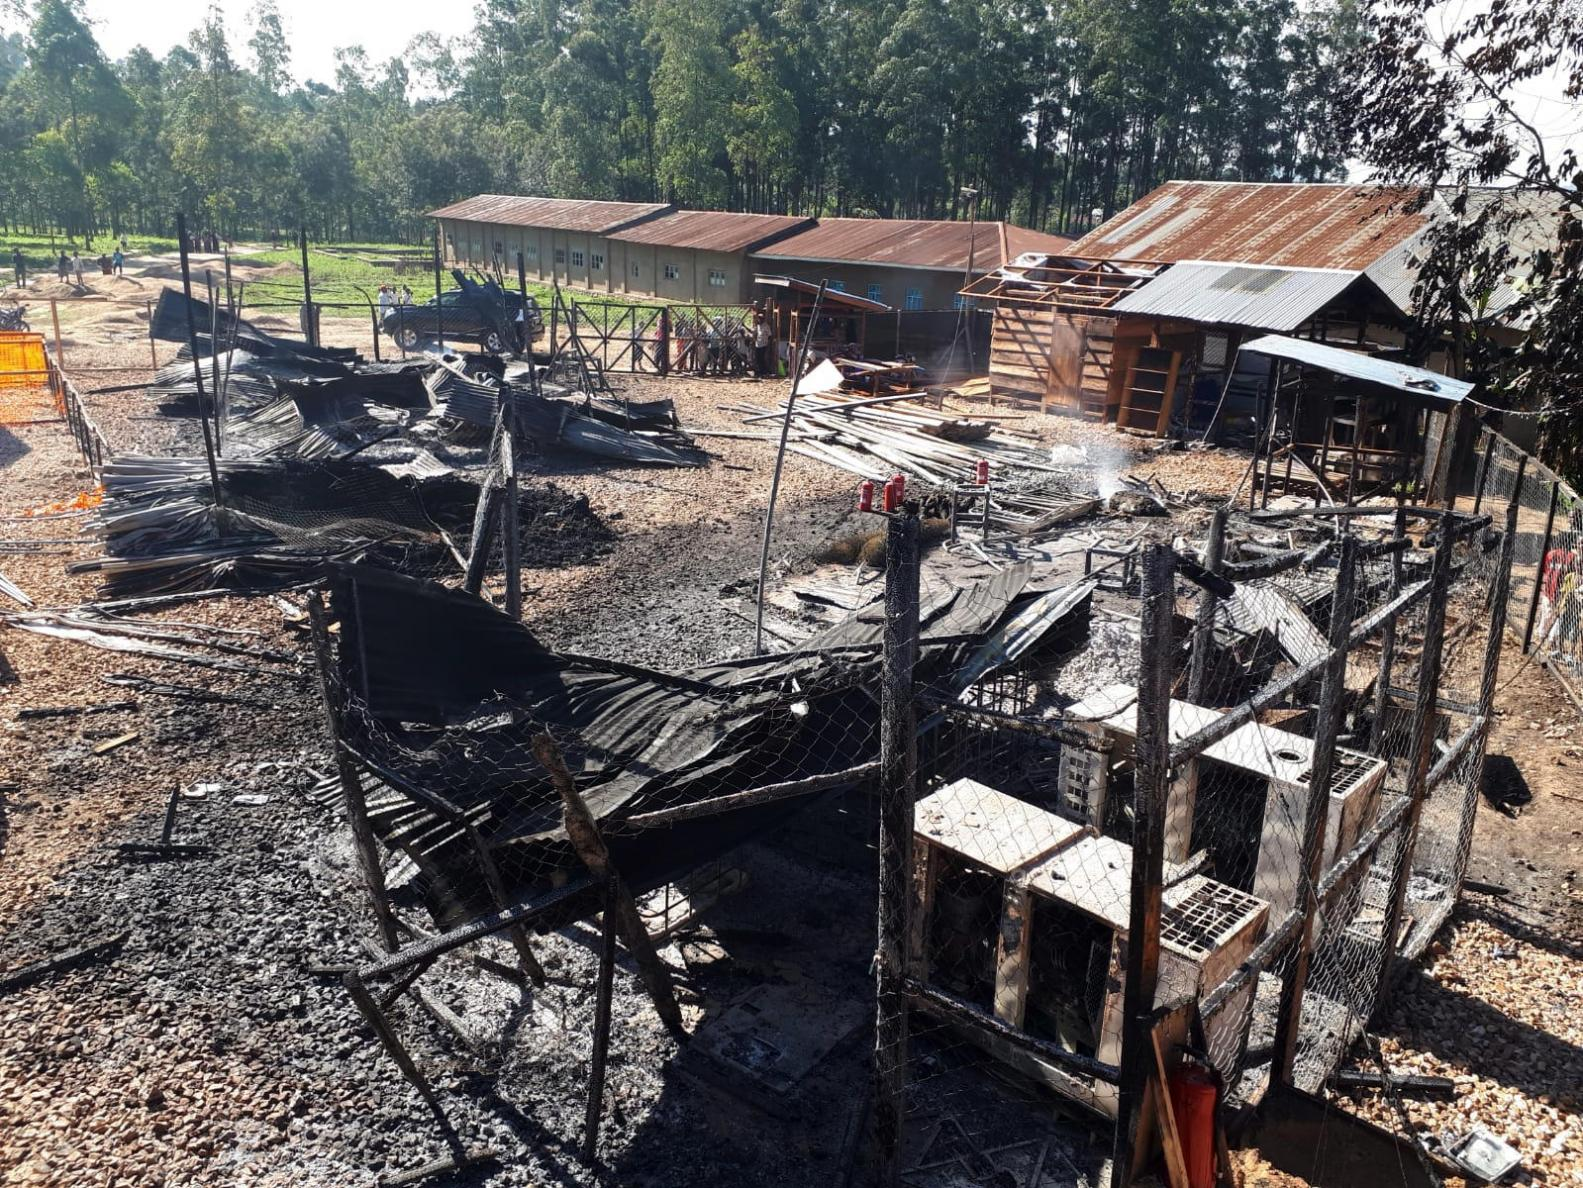 On 24 February 2019, an unknown group attacked an Ebola treatment centre in Katwa - forcing MSF to suspend activities in the area